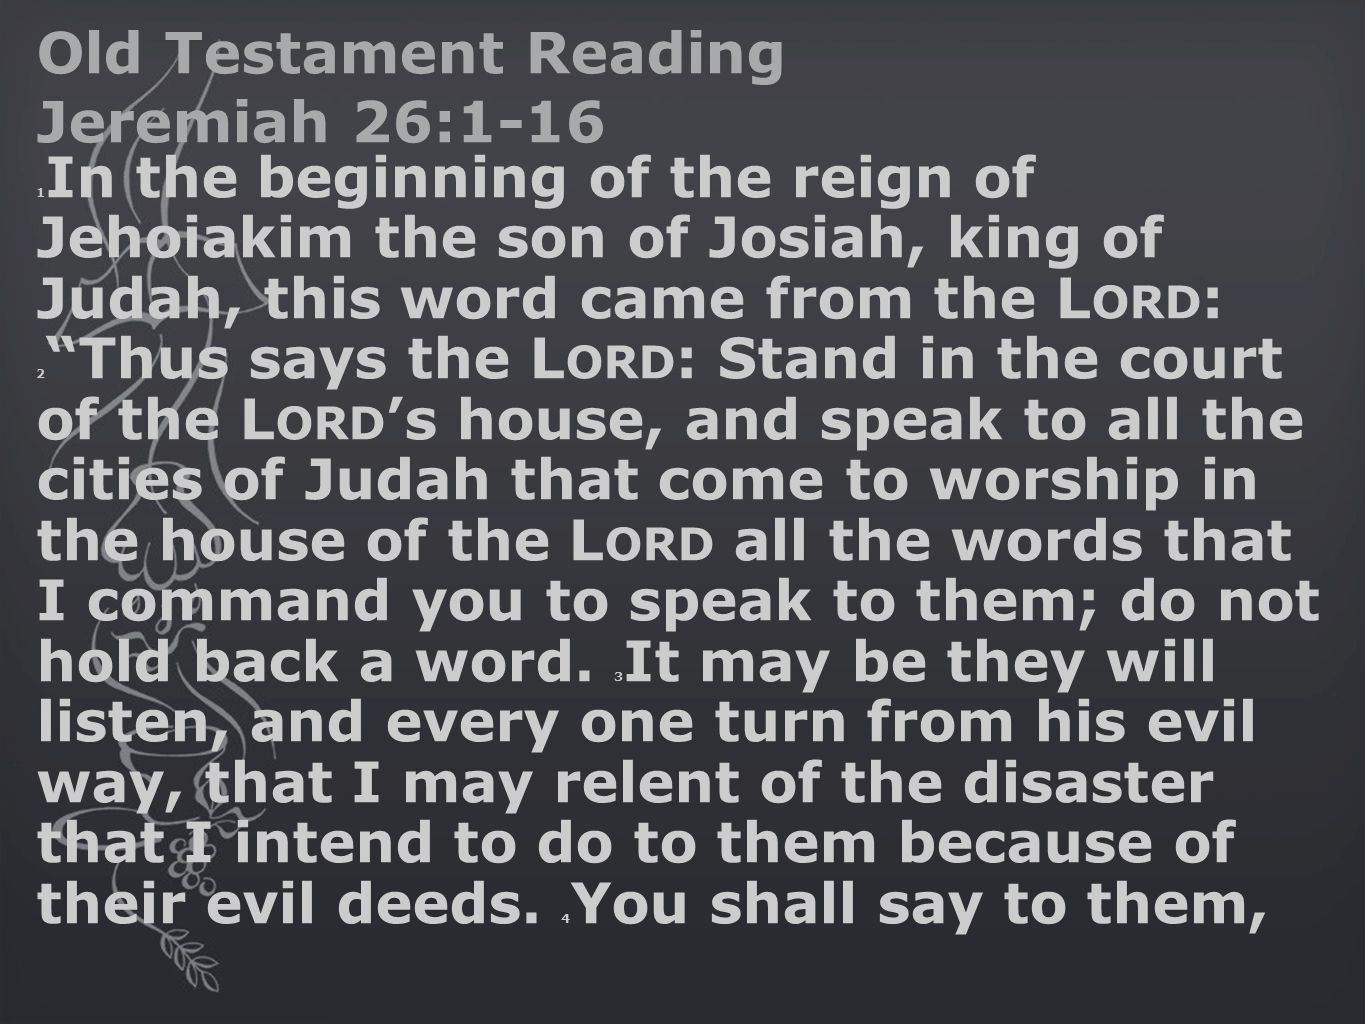 Old Testament Reading Jeremiah 26:1-16 1 In the beginning of the reign of Jehoiakim the son of Josiah, king of Judah, this word came from the L ORD : 2 Thus says the L ORD : Stand in the court of the L ORD 's house, and speak to all the cities of Judah that come to worship in the house of the L ORD all the words that I command you to speak to them; do not hold back a word.